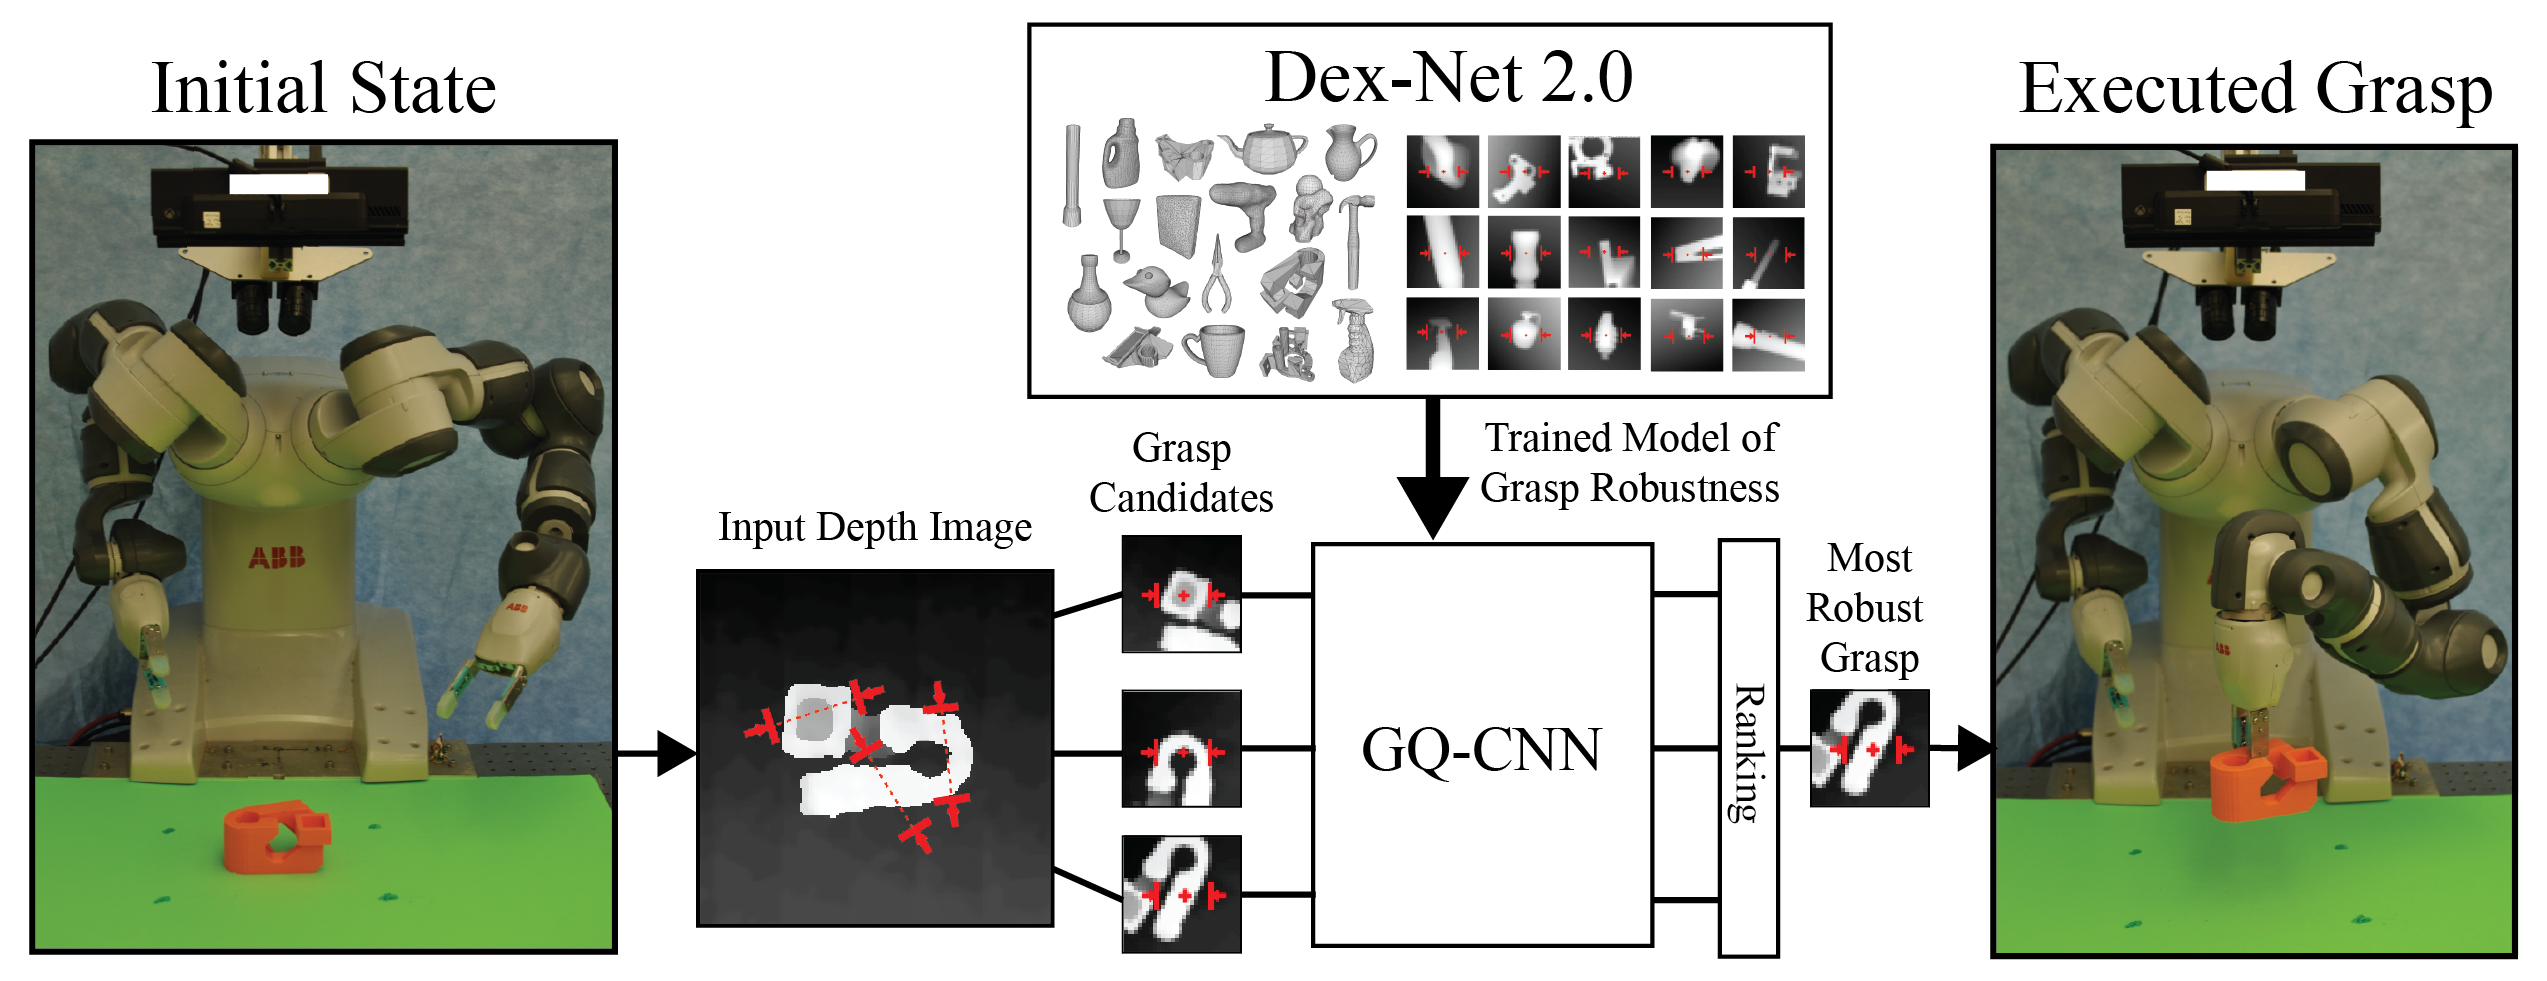 Dex-Net 2.0 Architecture. (Center) The Grasp Quality Convolutional Neural Network (GQ-CNN) is trained offline to predict analytic robustness of candidate grasps from depth images using a dataset of 6.7 million synthetic point clouds, grasps, and associated analytic grasp metrics computed with Dex-Net 1.0. (Left) When an object is presented to the robot, a depth camera returns a 3D point cloud, where pairs of antipodal points identify a set of several hundred grasp candidates. (Right) The GQ-CNN rapidly determines the most robust grasp candidate, which is executed with the ABB YuMi robot. If the object is lifted, transported, and shaken without dropping, the trial is considered a success.